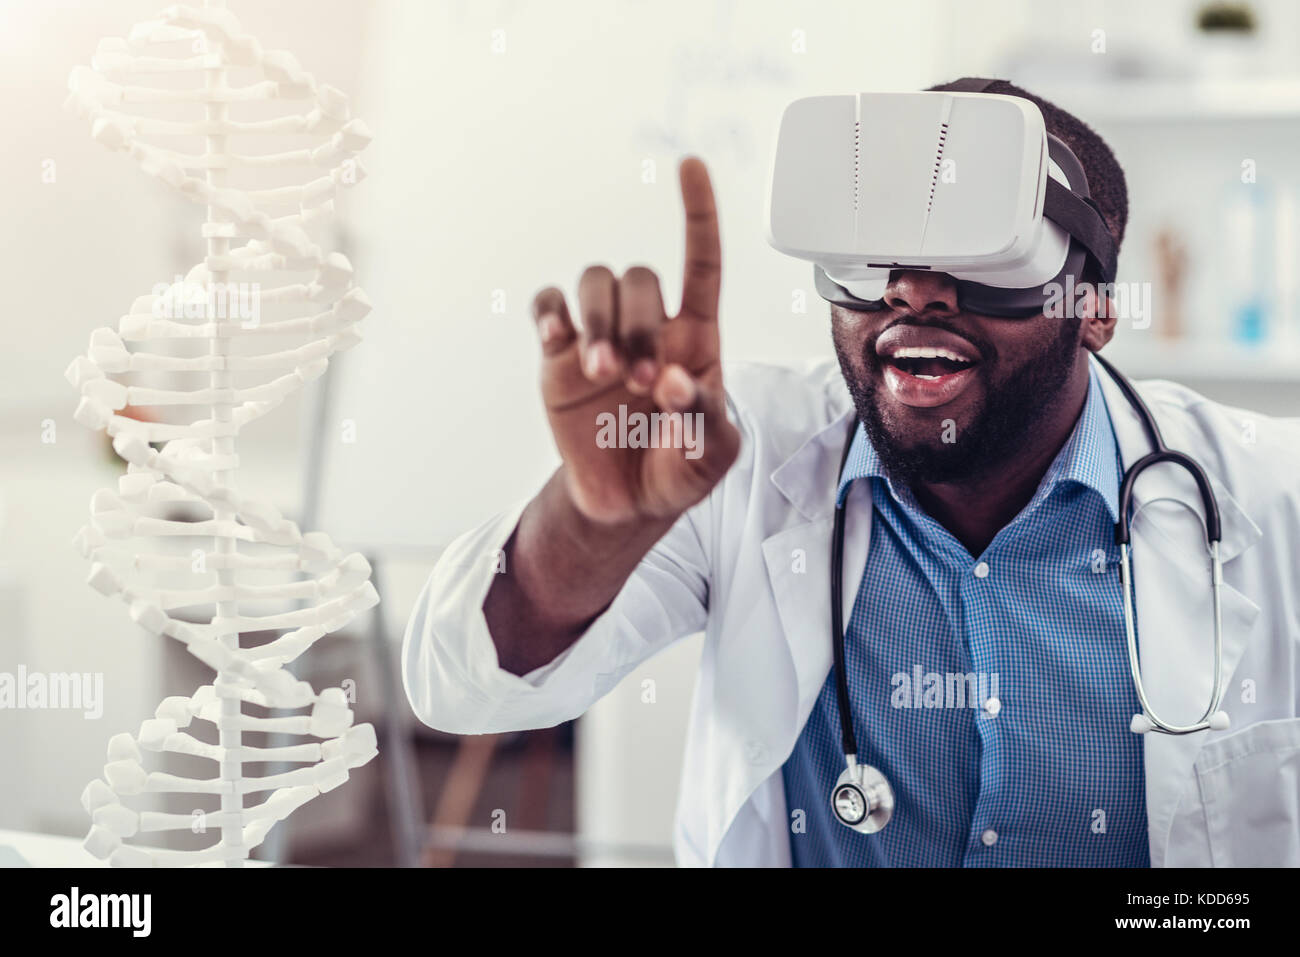 Young medical worker wearing VR goggles at work - Stock Image